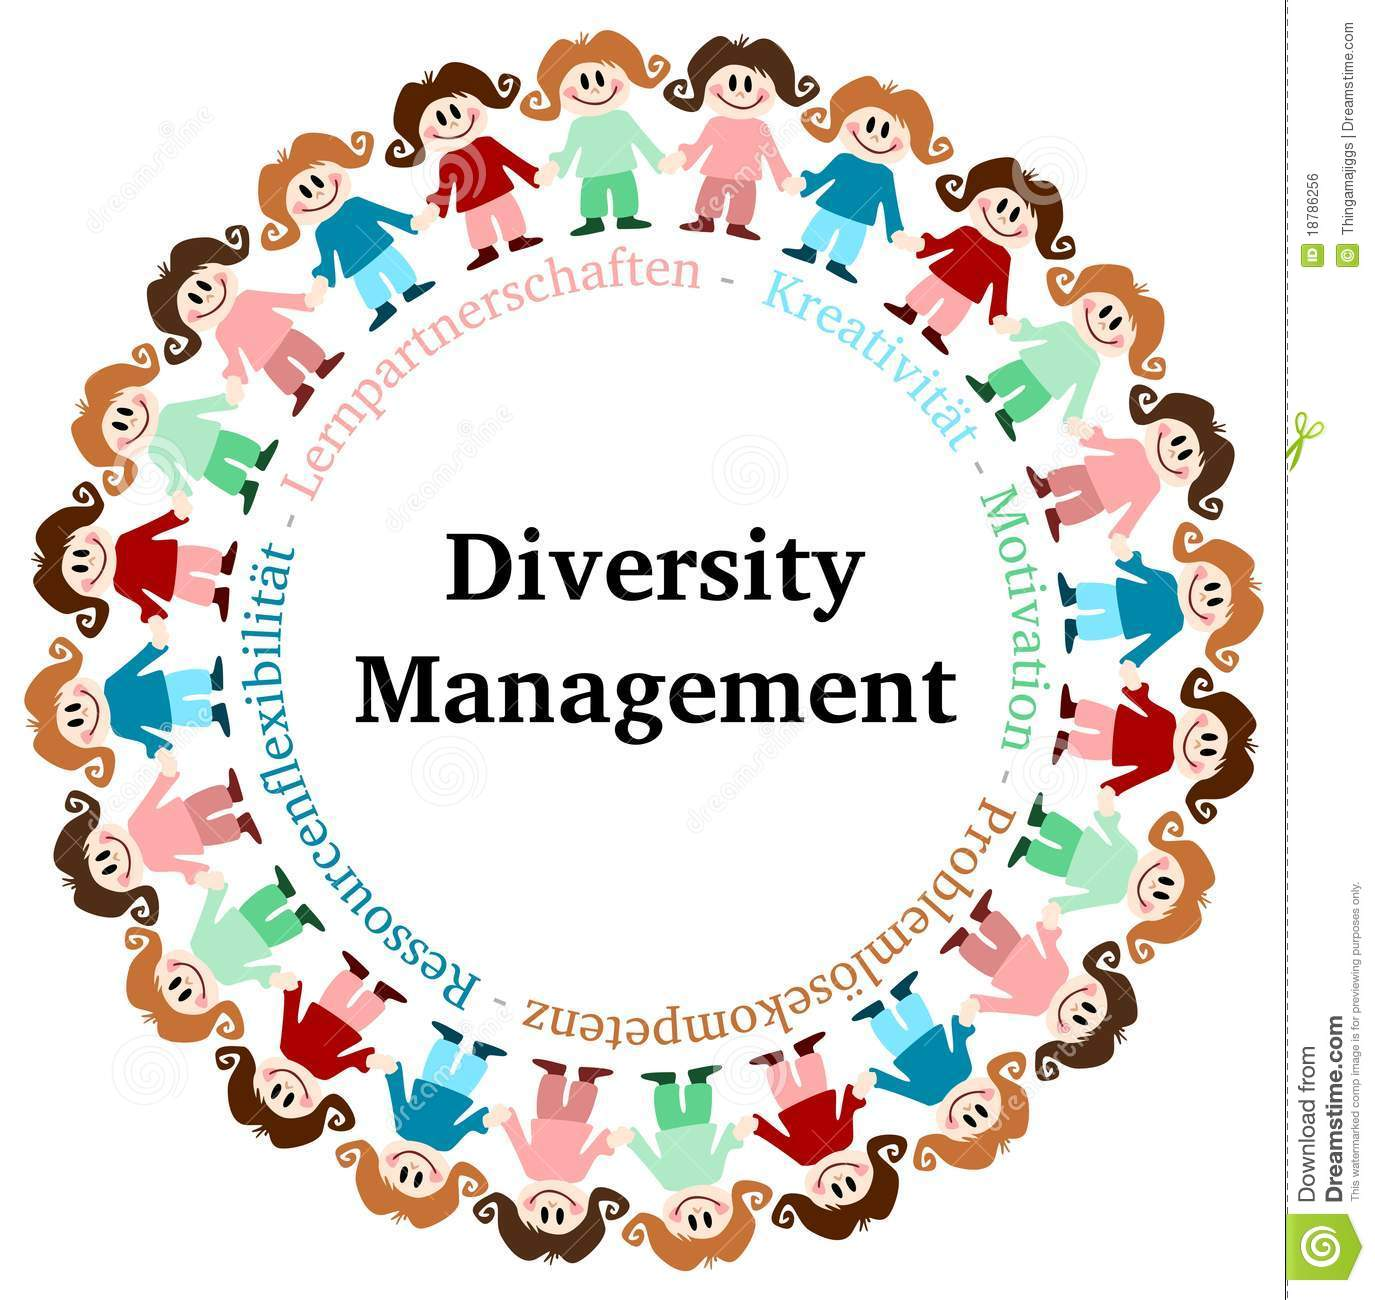 diversity management is the key to Diversity is the key to a successful journey no matter what road you're on, a diverse lineup will keep you going strong.